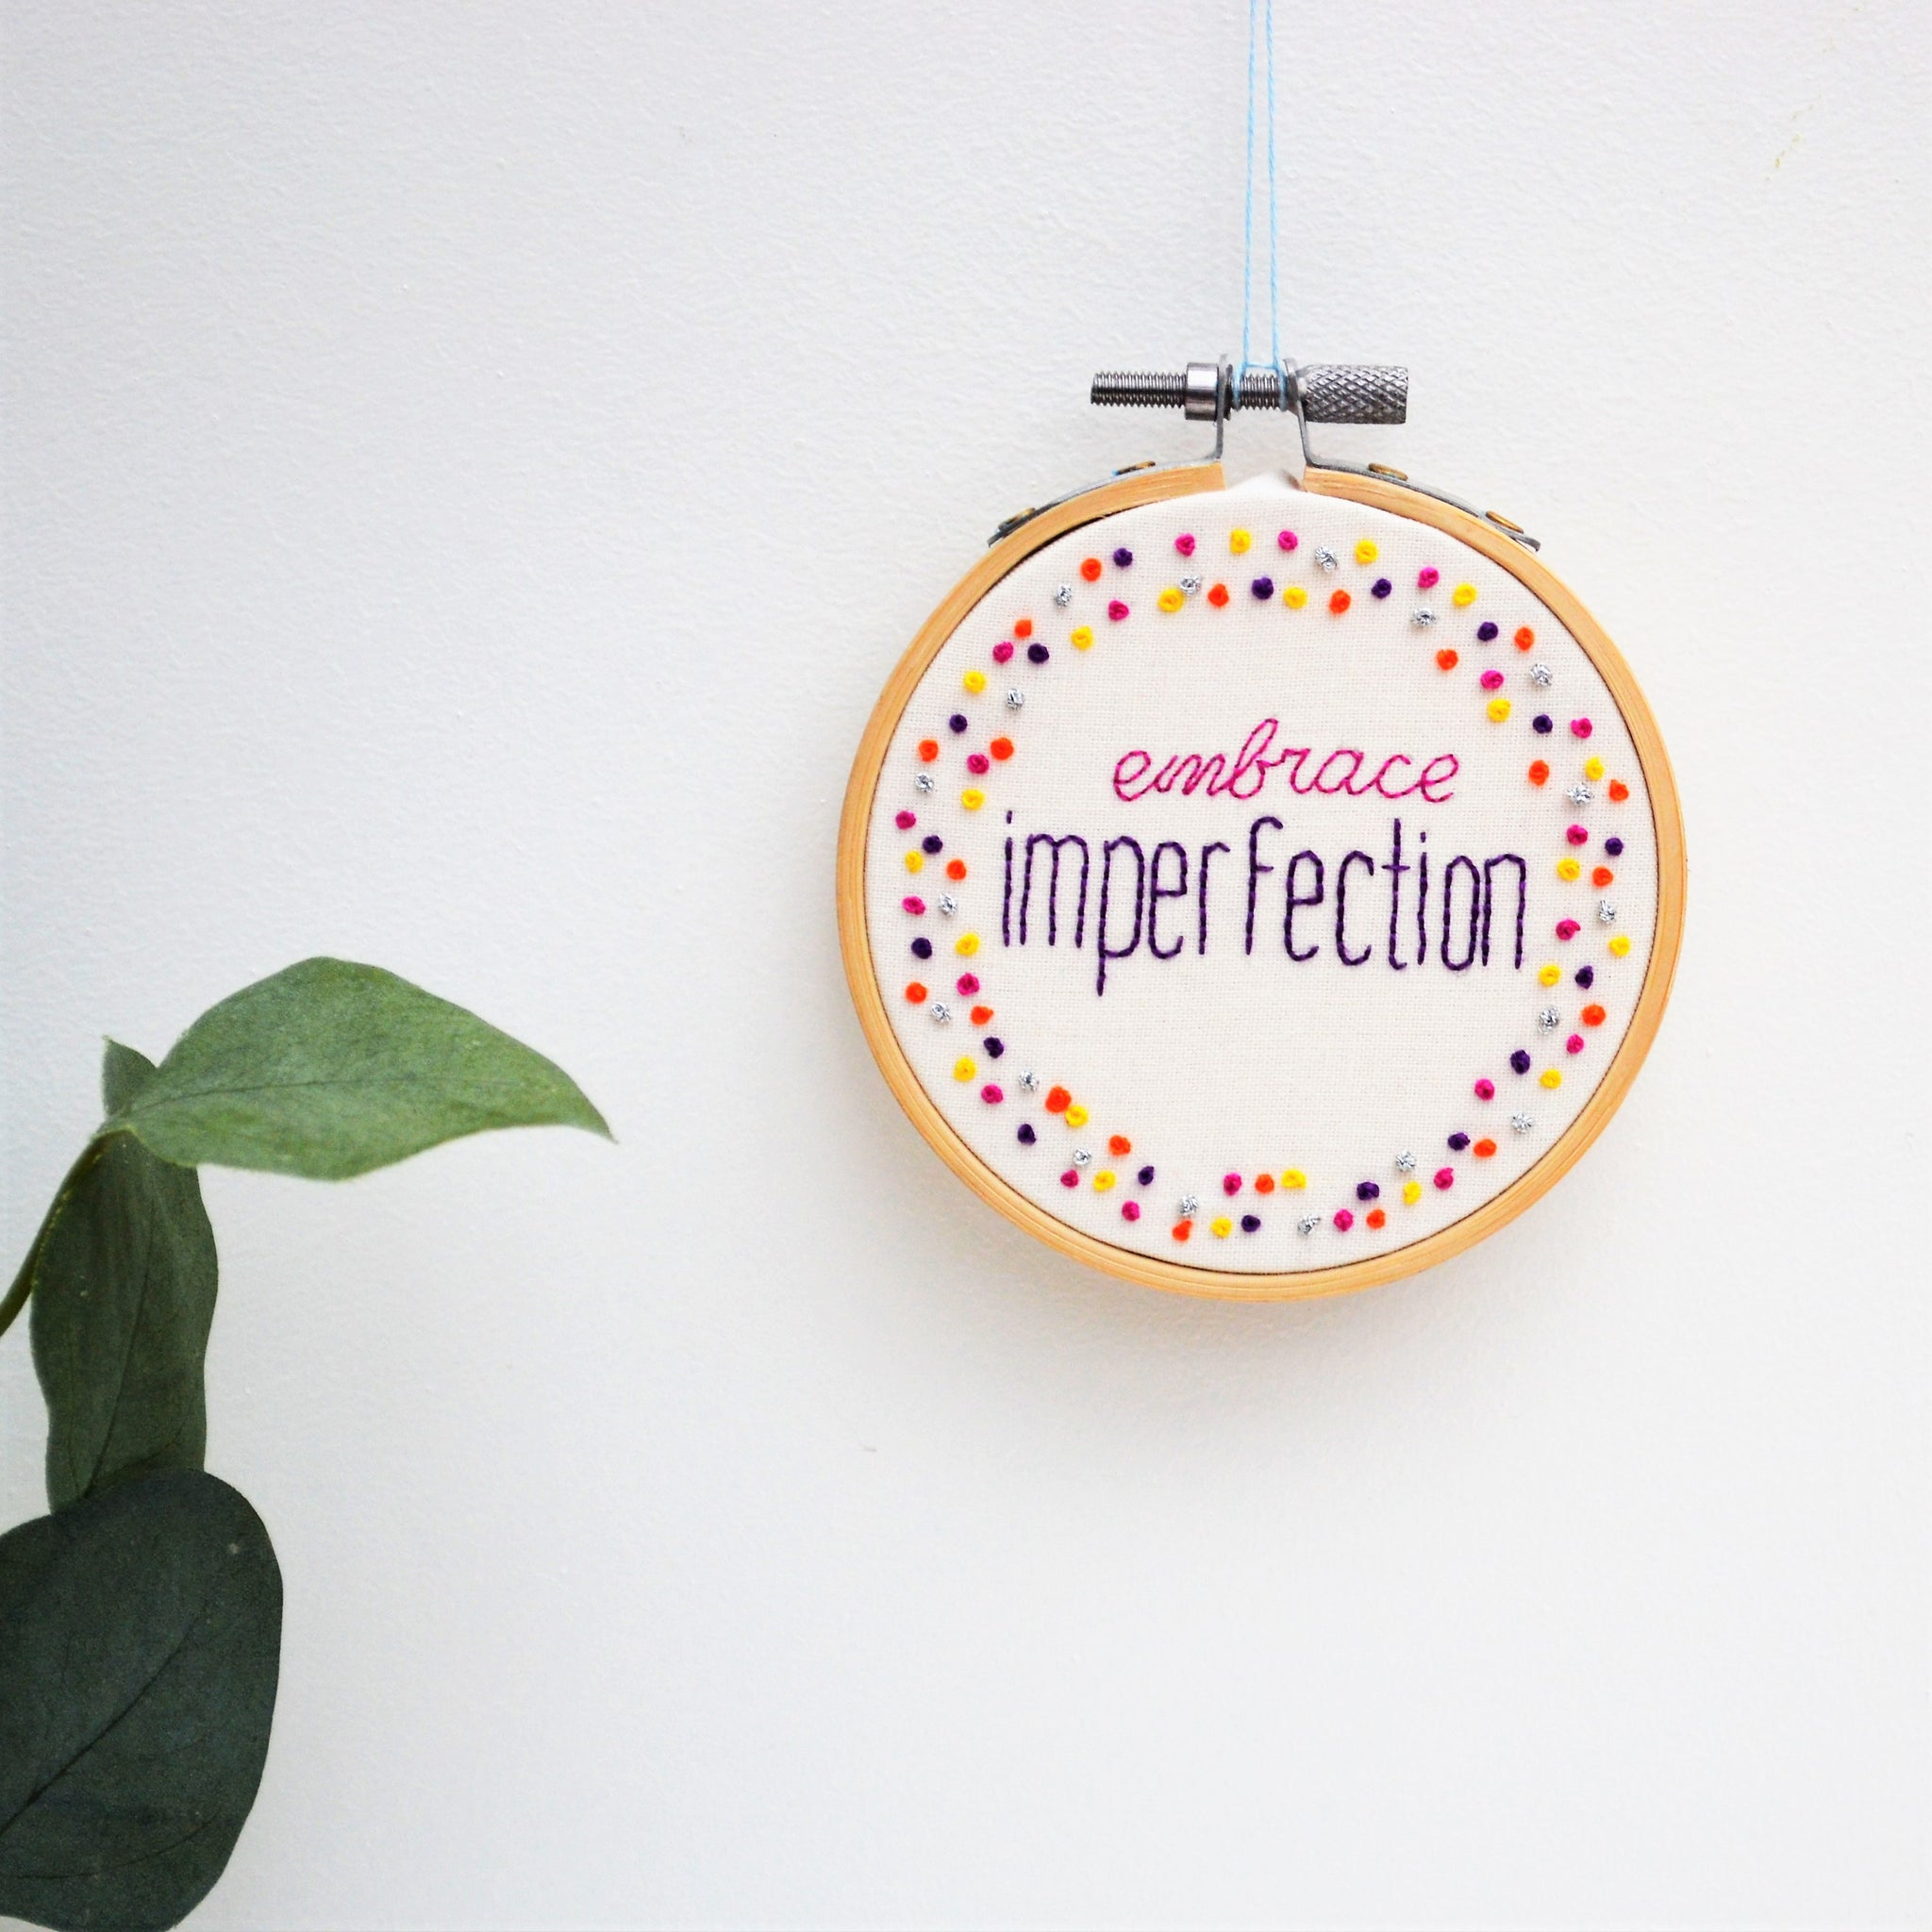 Embrace Imperfection Miniature Inspirational Embroidery Hoop Art